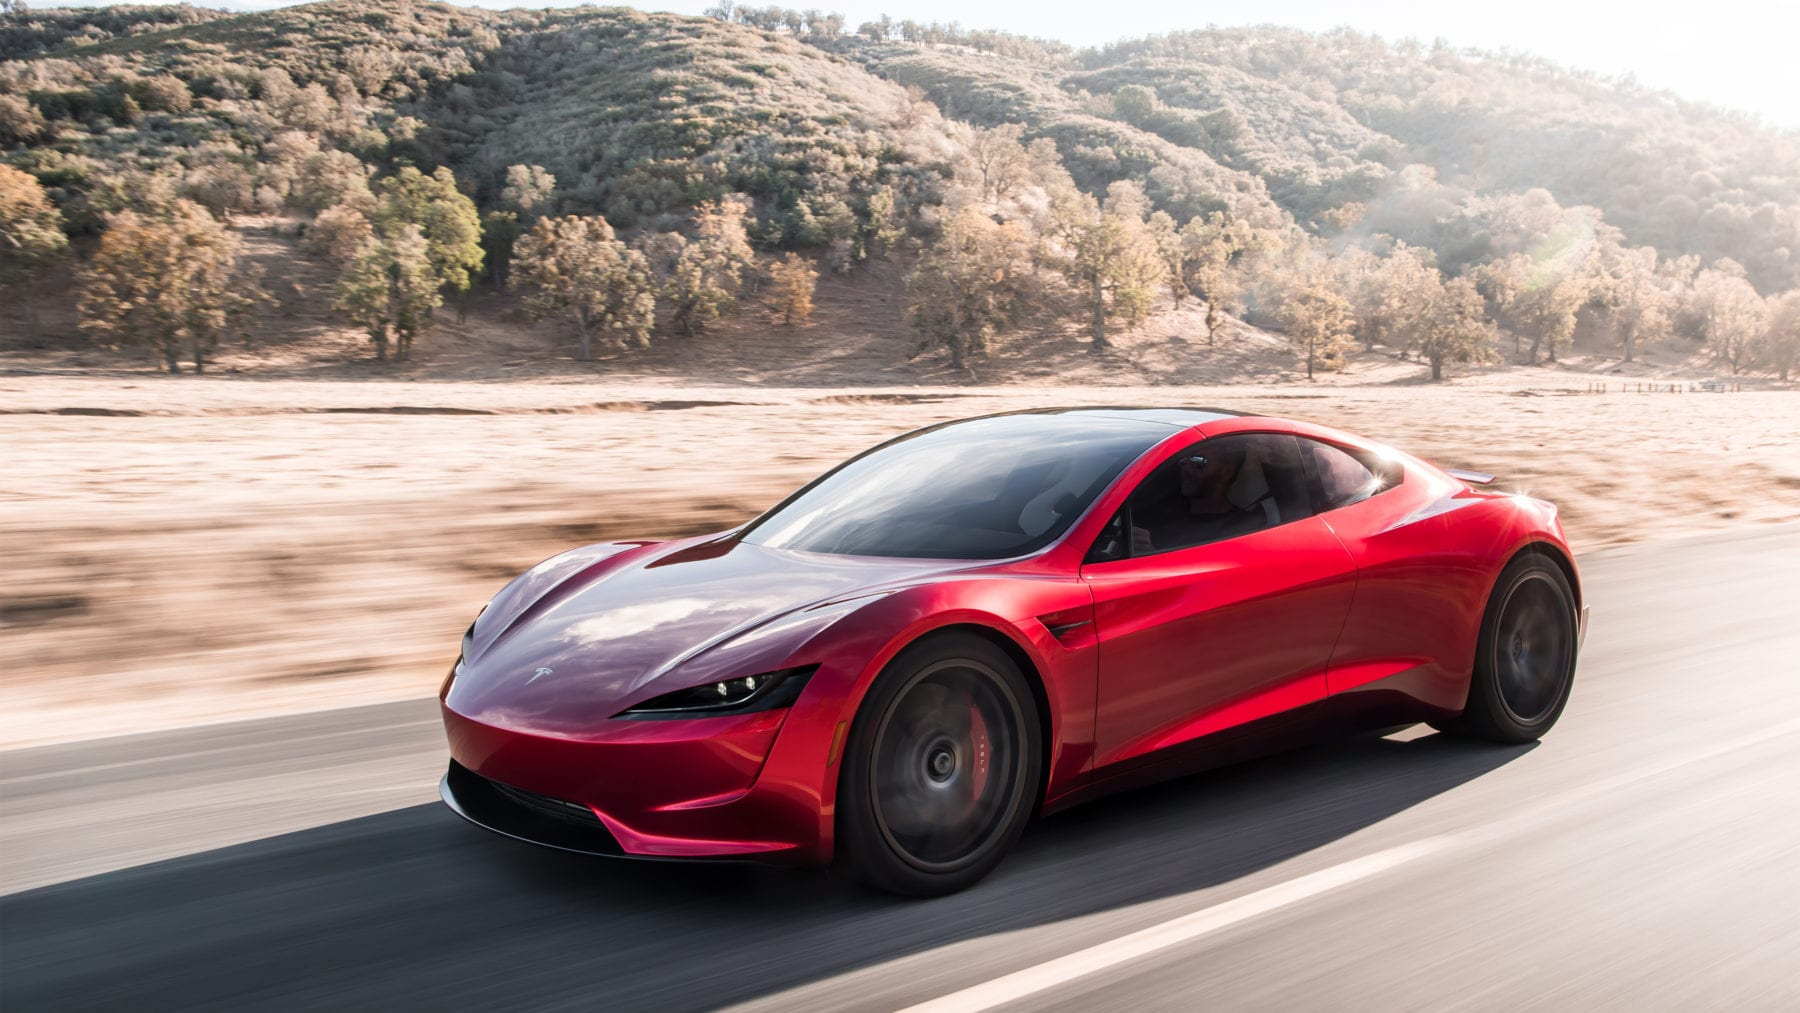 We Ve Already Compiled A List Of All Upcoming Electric Cars And Even Have Full Database Every Vehicle Available Concepts